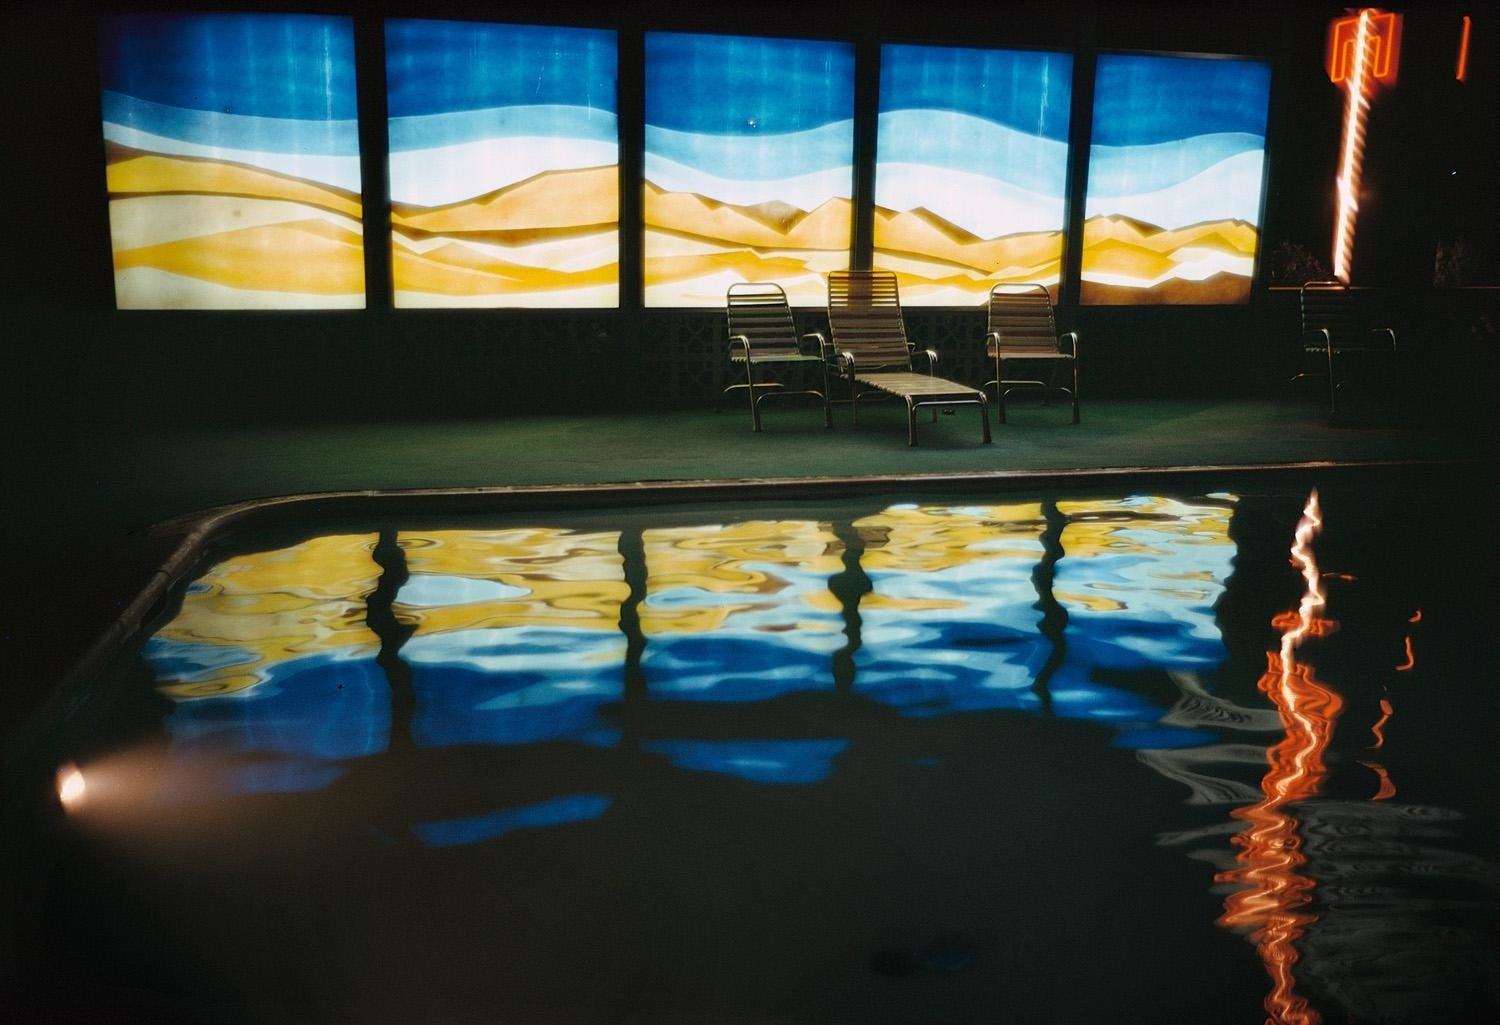 Swimming Pool Reflection by Ernst Haas